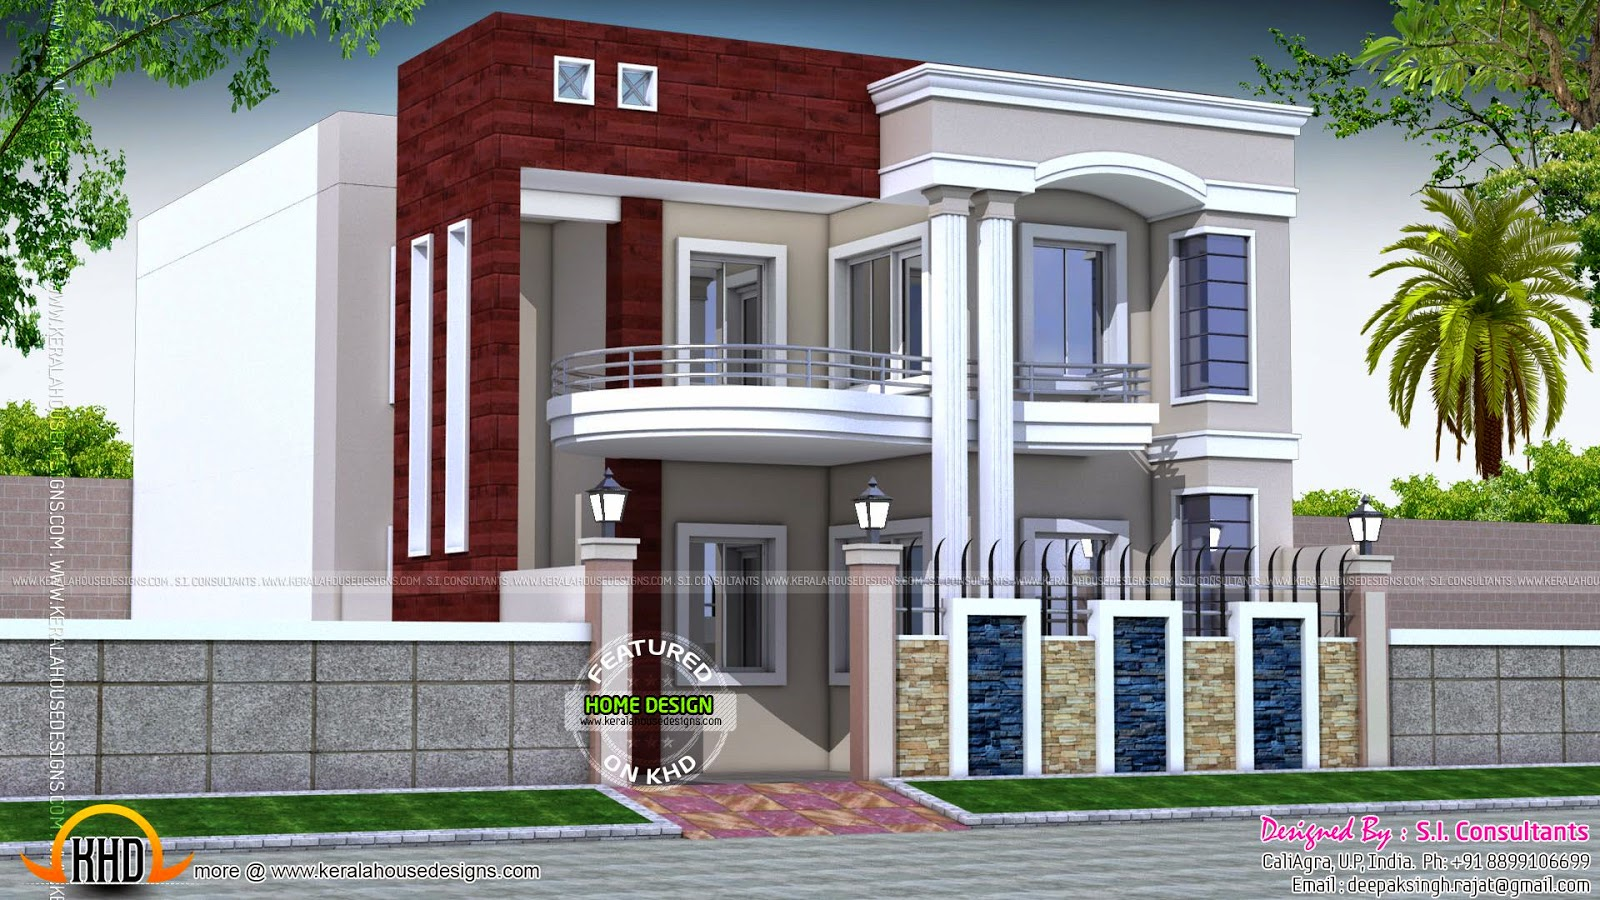 House design in north india kerala home design and floor for Simple house plans india